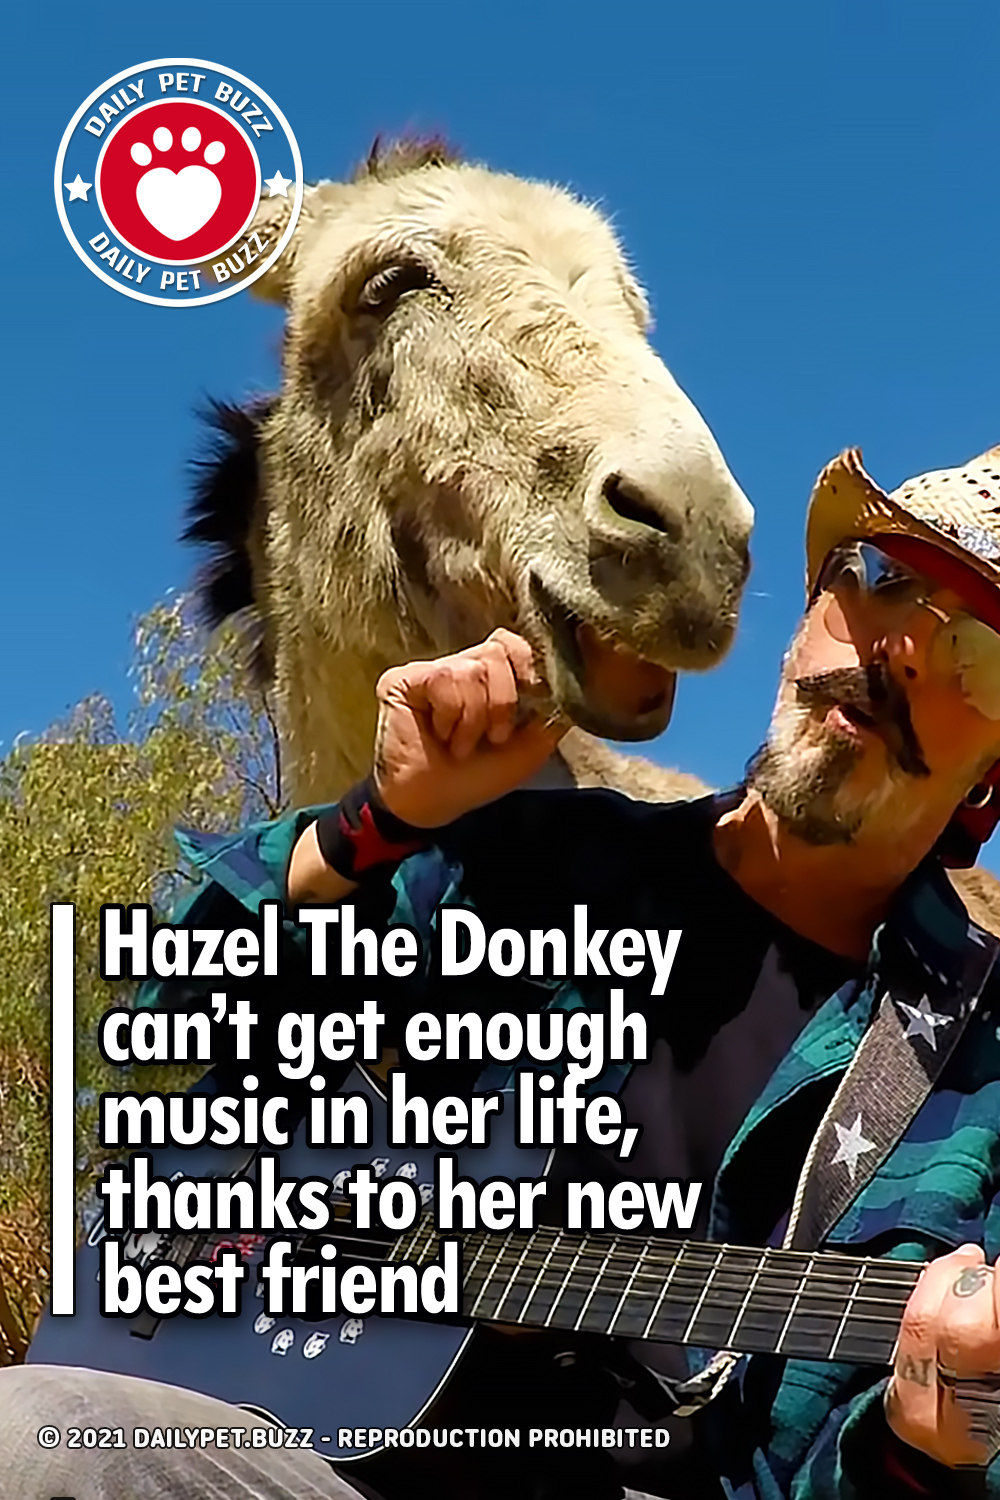 Hazel The Donkey can't get enough music in her life, thanks to her new best friend